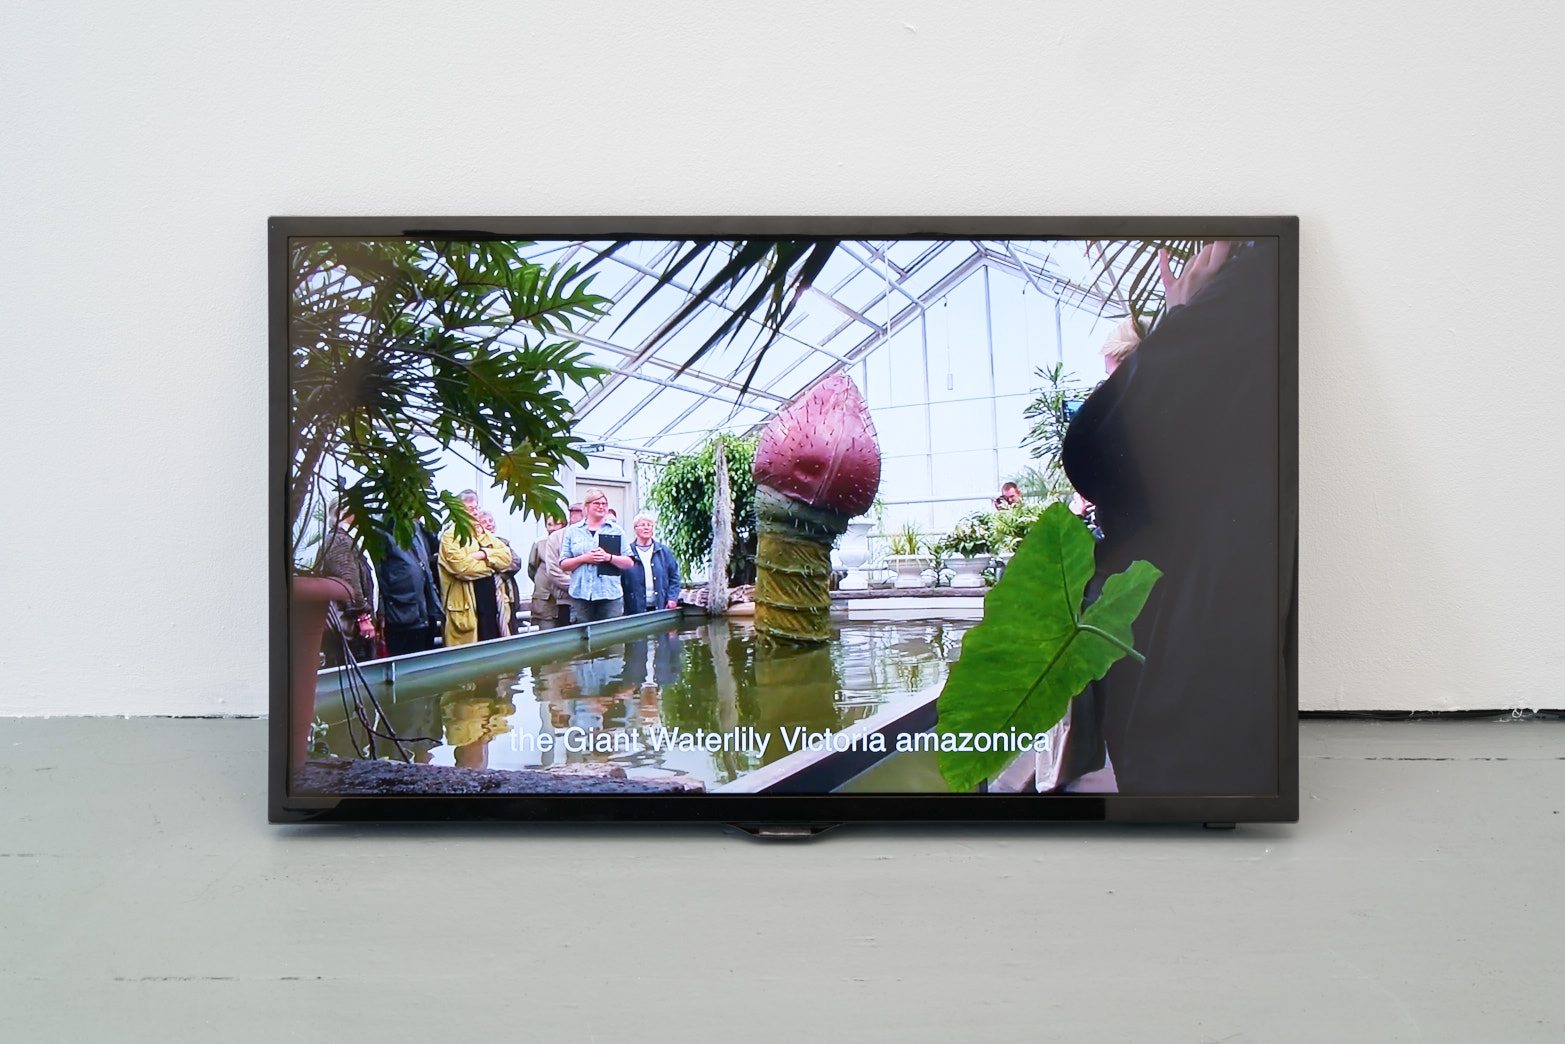 Ingela Ihrman, The Giant Water Lily Victoria amazonica BLOOMS, 2012, Documentation of a 2-night performance with waterlily costume, female host, pineapple fragrance